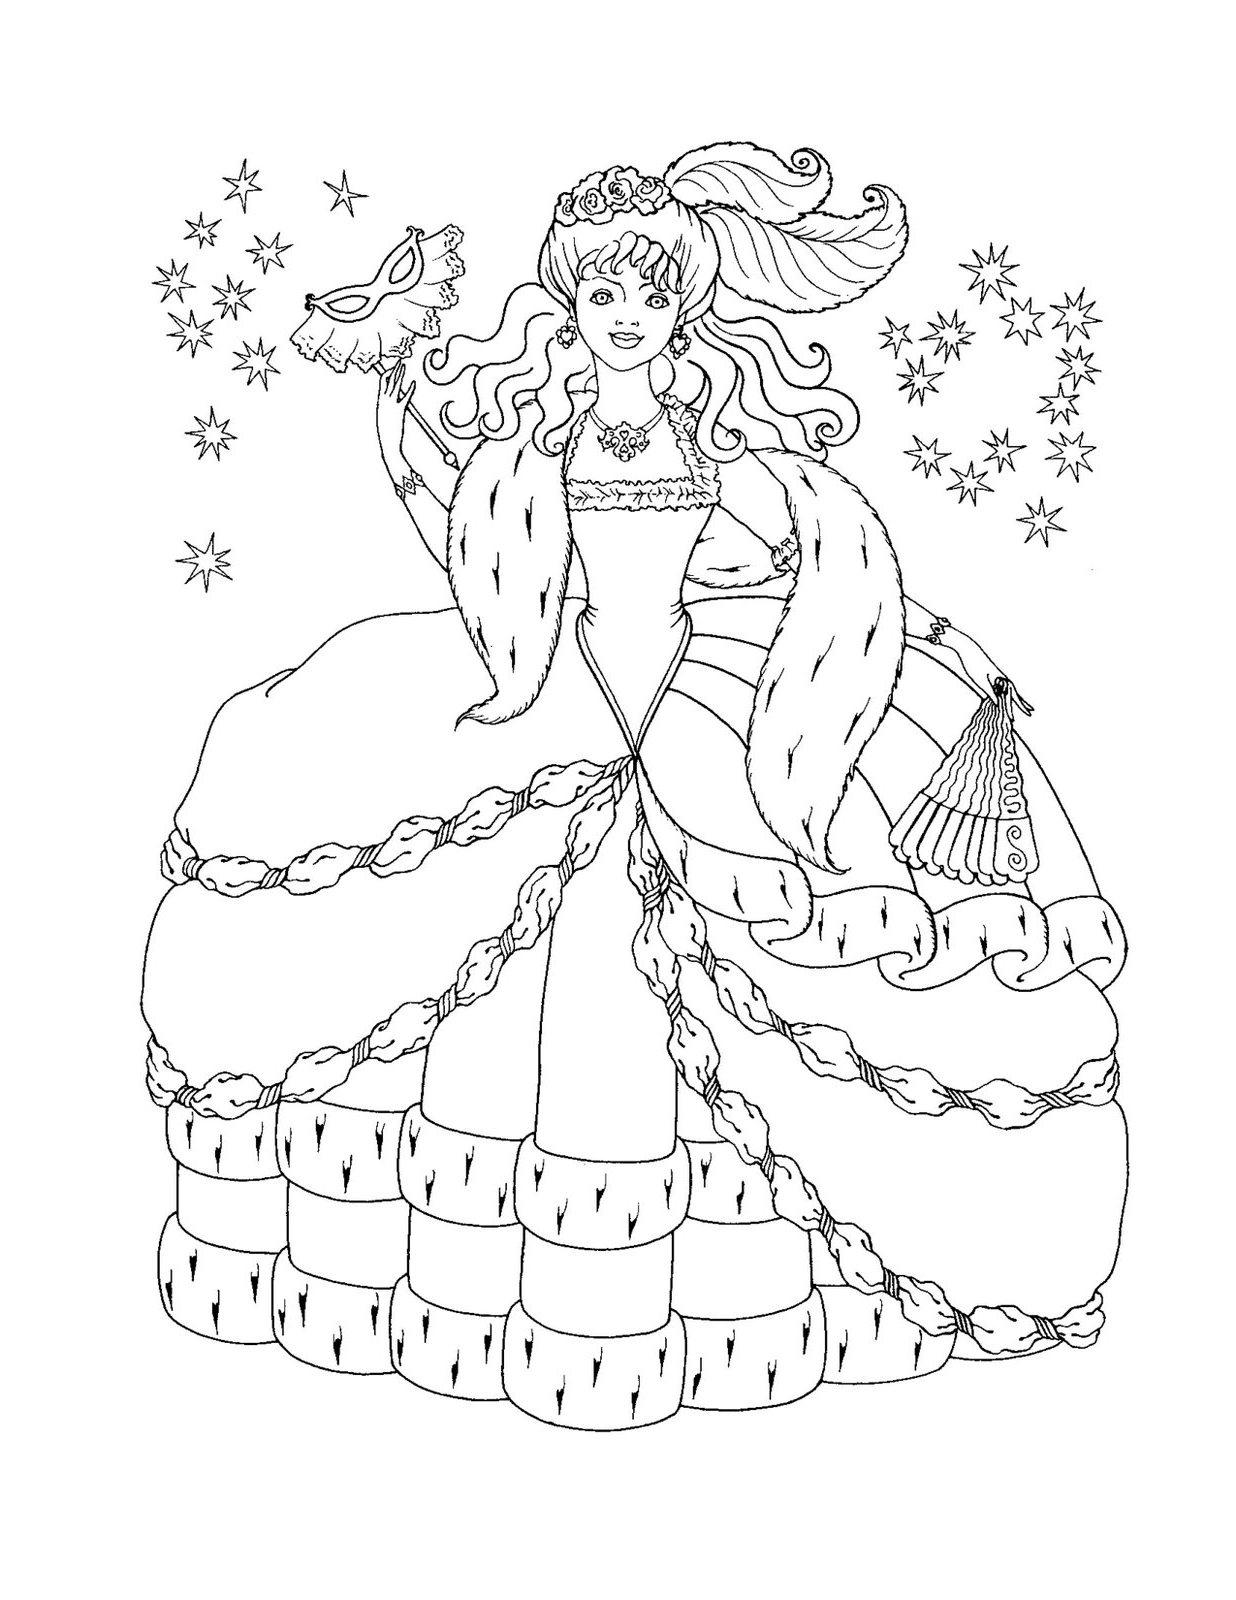 Free Printable Disney Princess Coloring Pages For Kids Coloring Pages Of The Princess Free Coloring Sheets